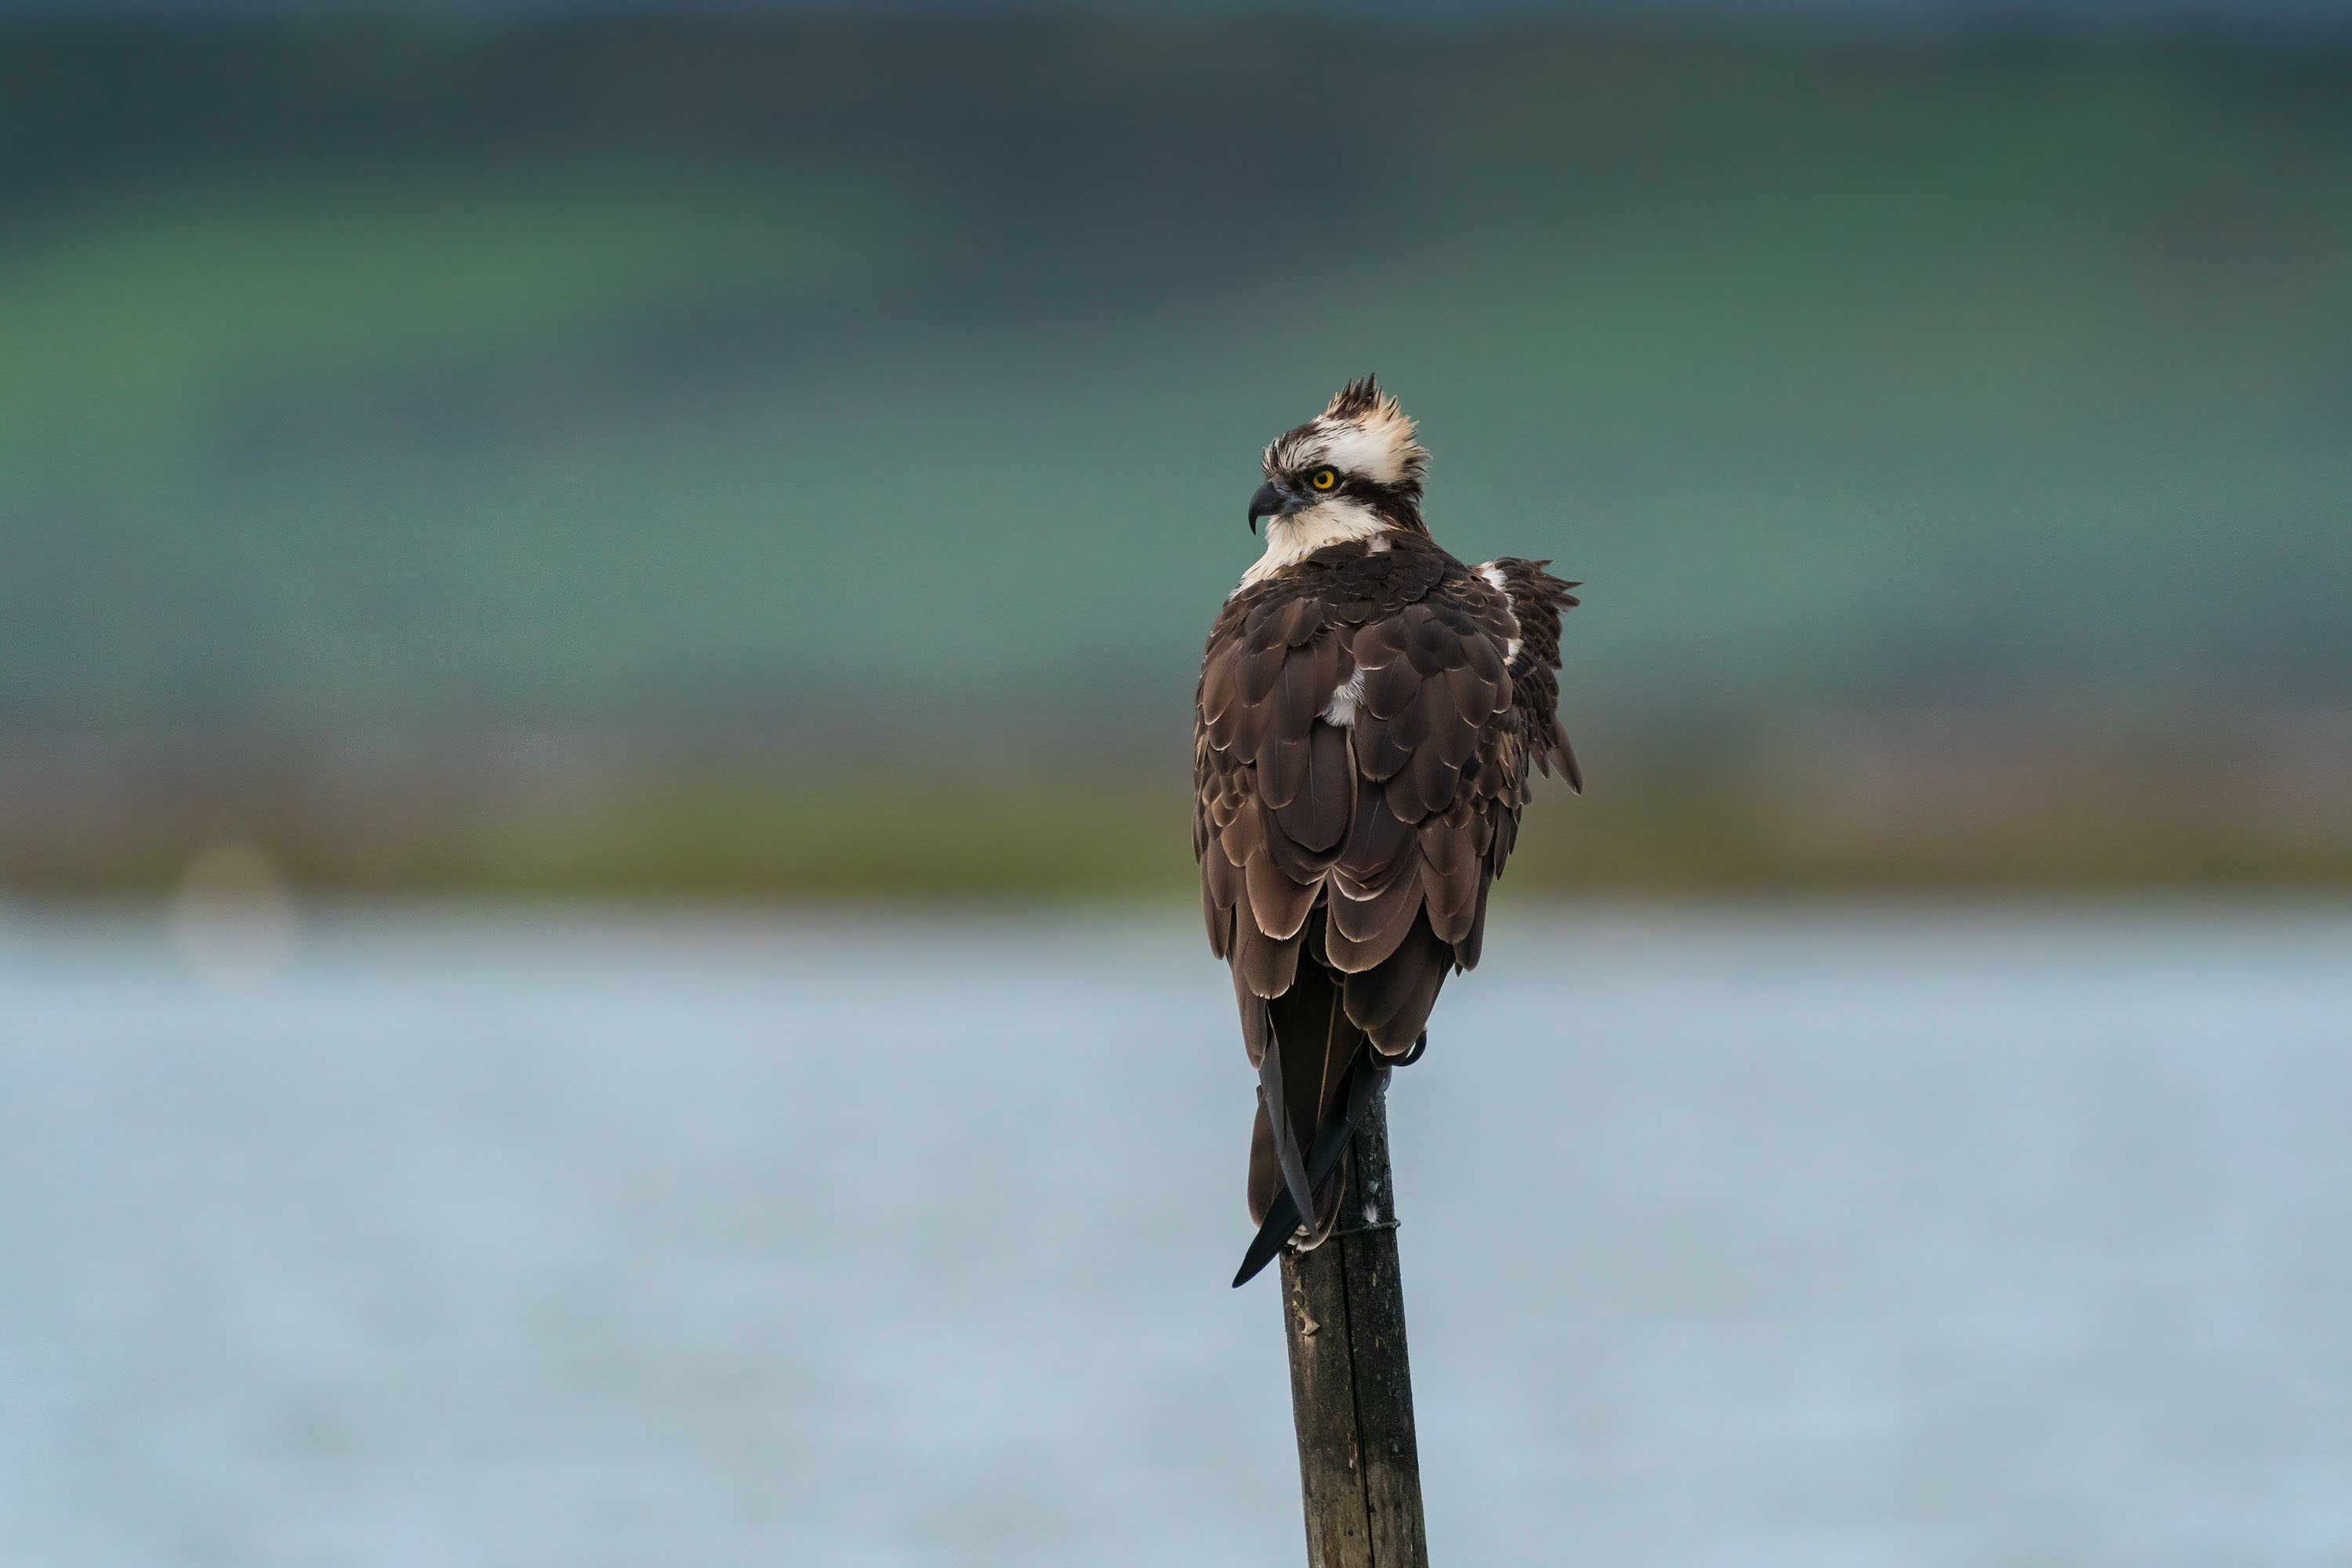 How to photograph an osprey